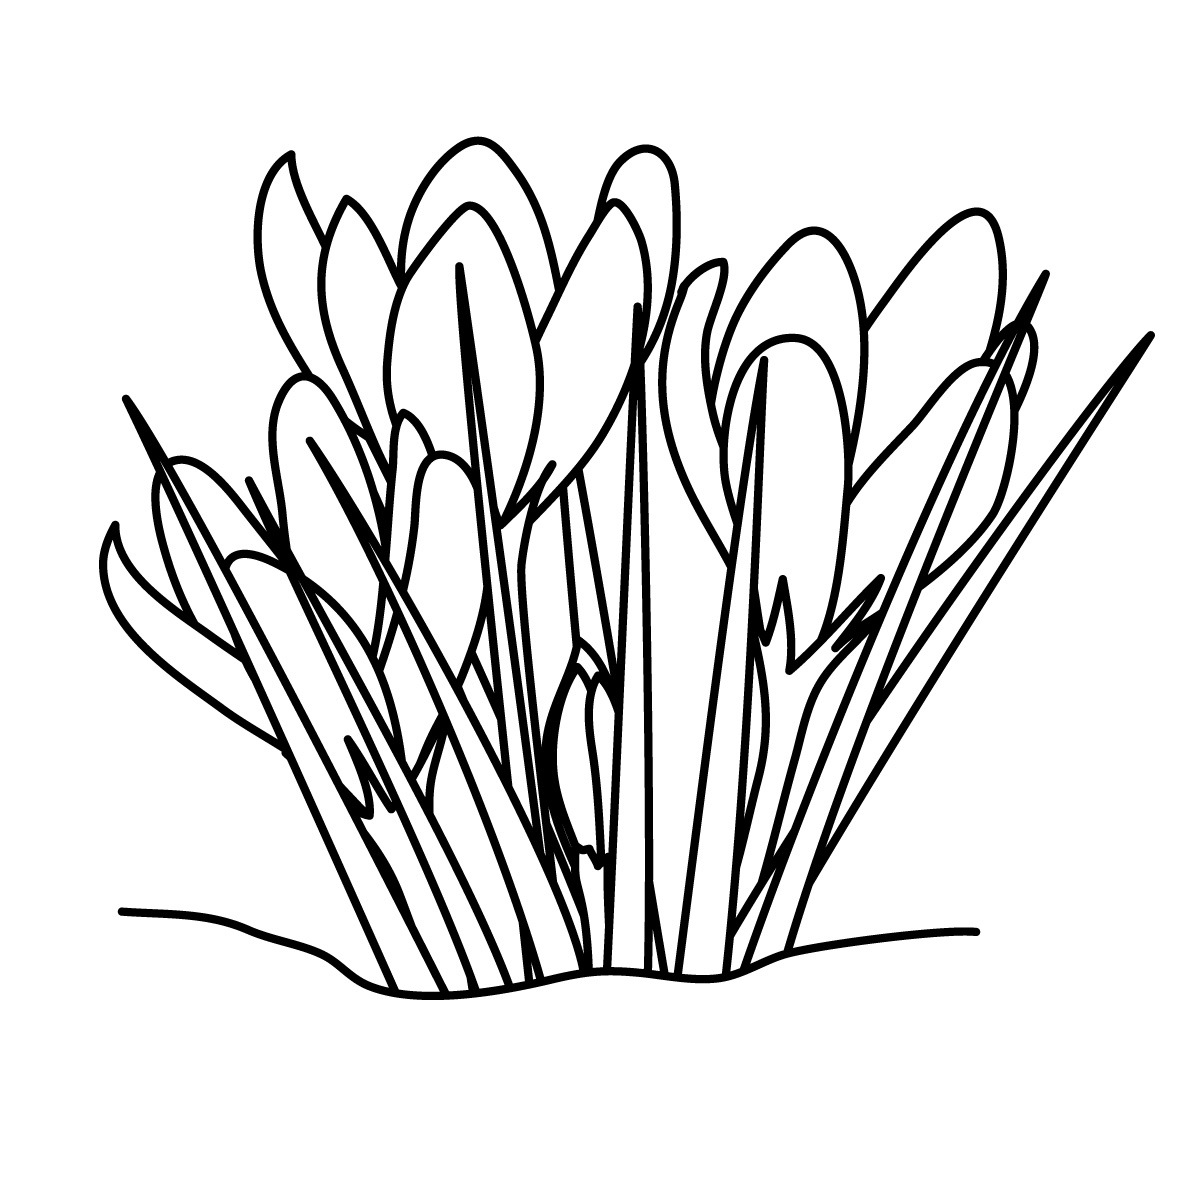 Grass Black And White Grass Clipart Line Drawing Pencil